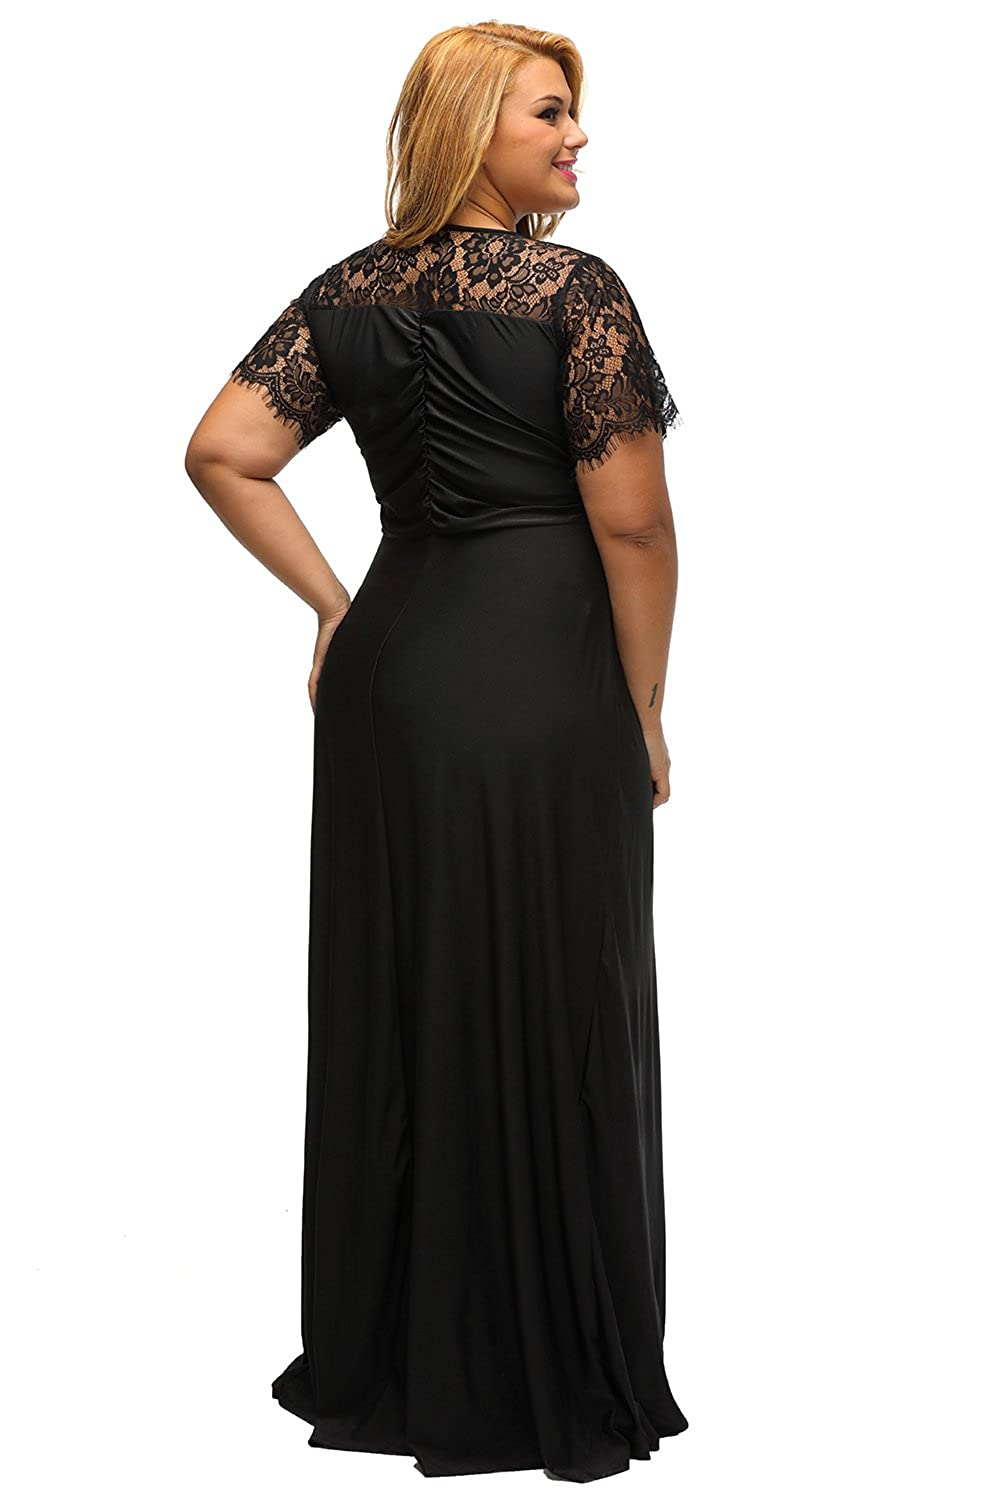 6a4148c060 Lalagen Women s Lace Sleeve V Neck Plus Size Evening Maxi Dress Gown Black  XL at Amazon Women s Clothing store